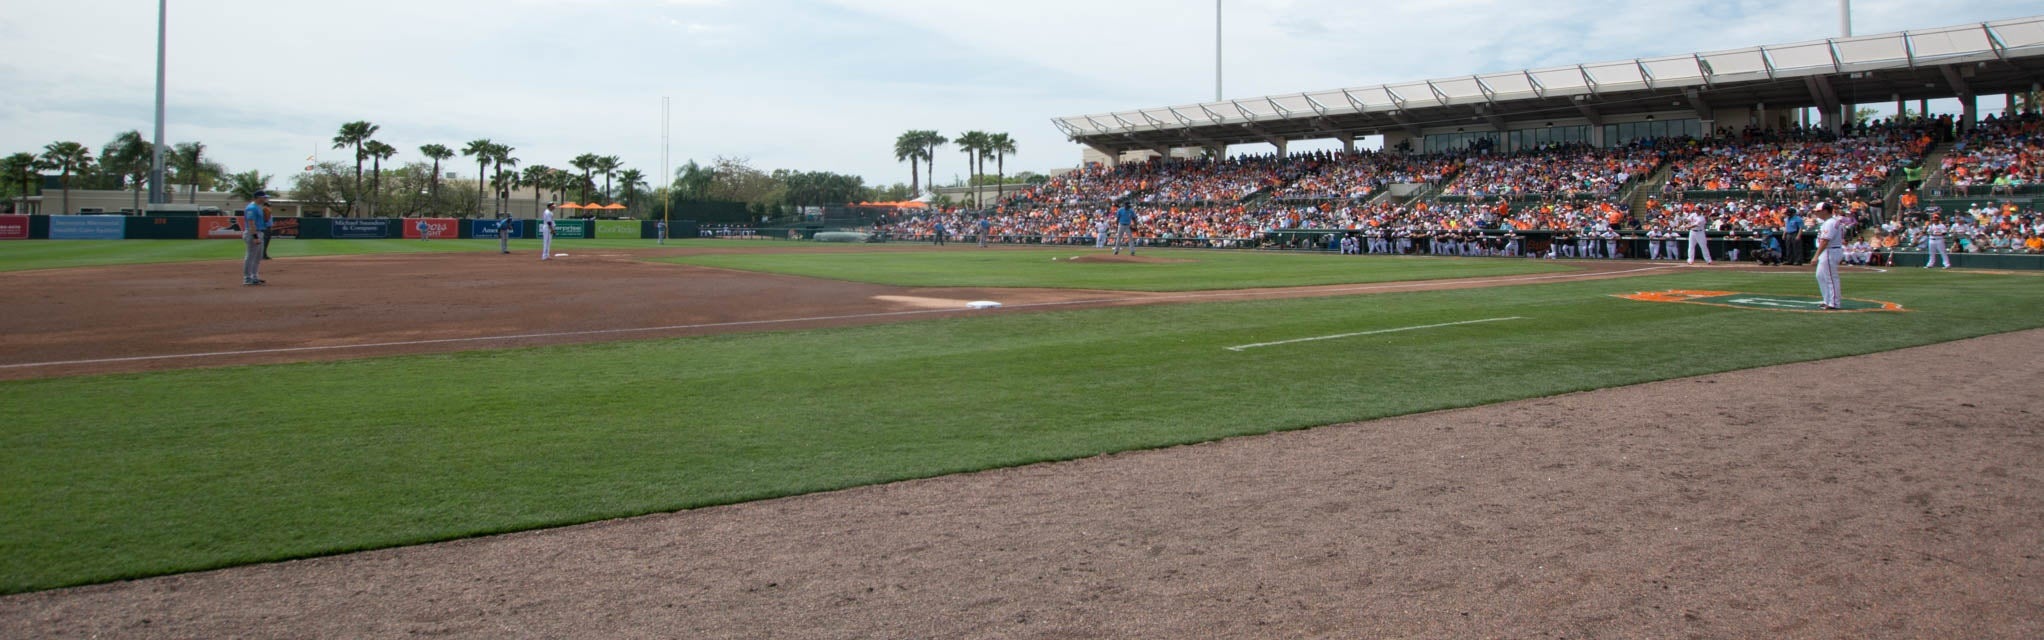 Seat view from Infield Box